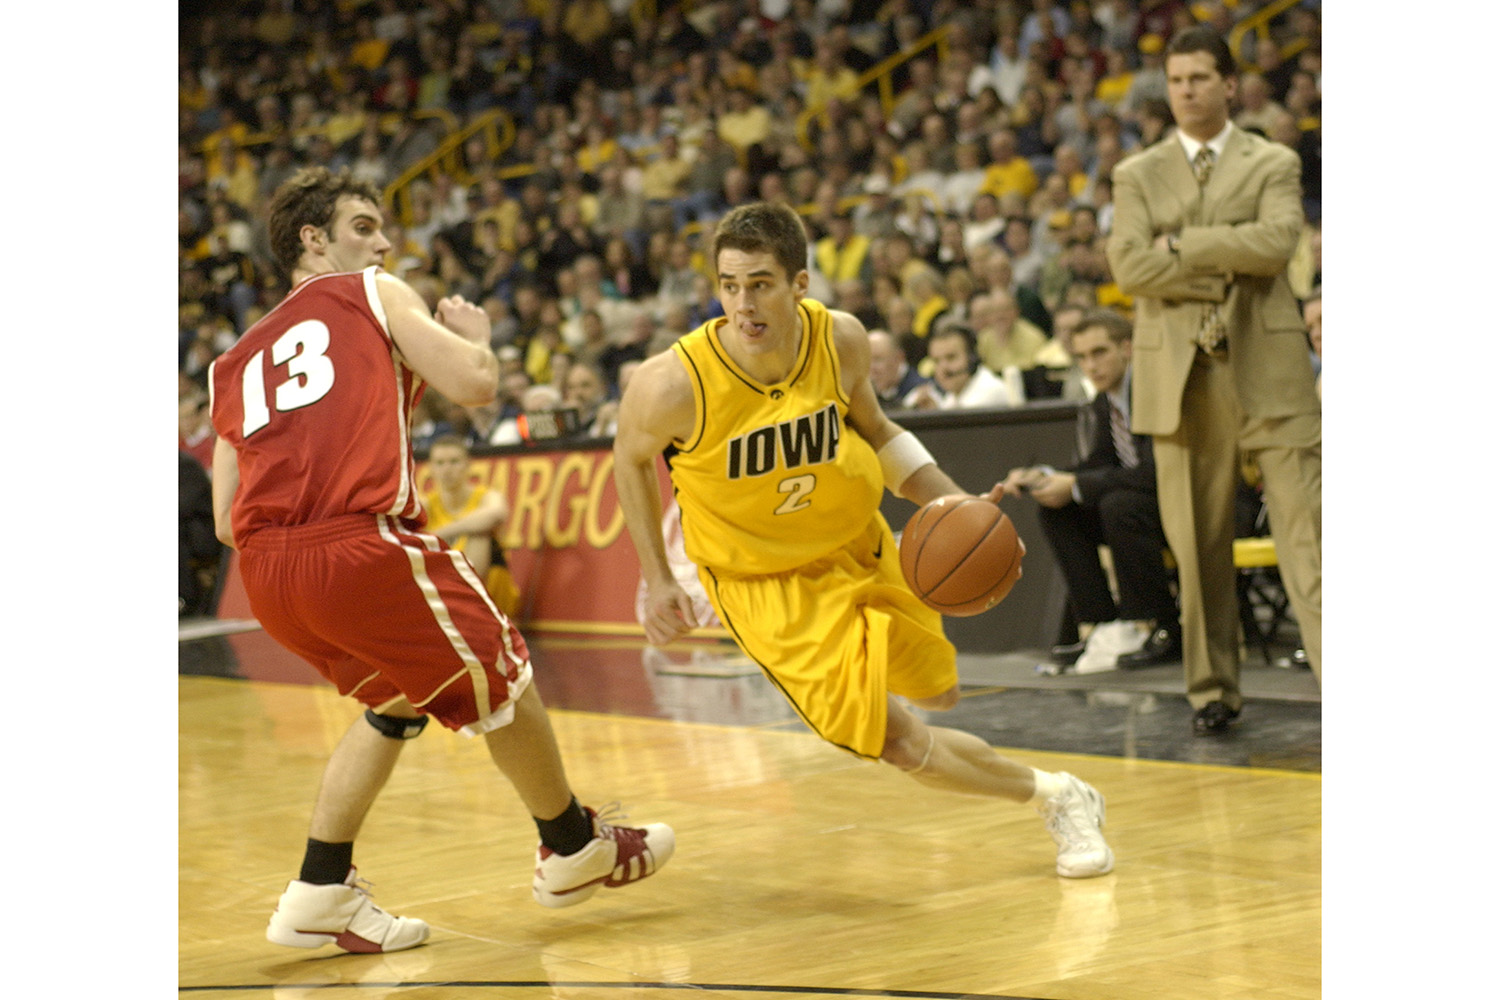 Ben Roberts/The Daily Iowan University of Iowa starting point guard Jeff Horner flies past Wisconsin's Clayton Hanson during a 54-52 loss to the Badgers on Wednesday evening in Iowa City.